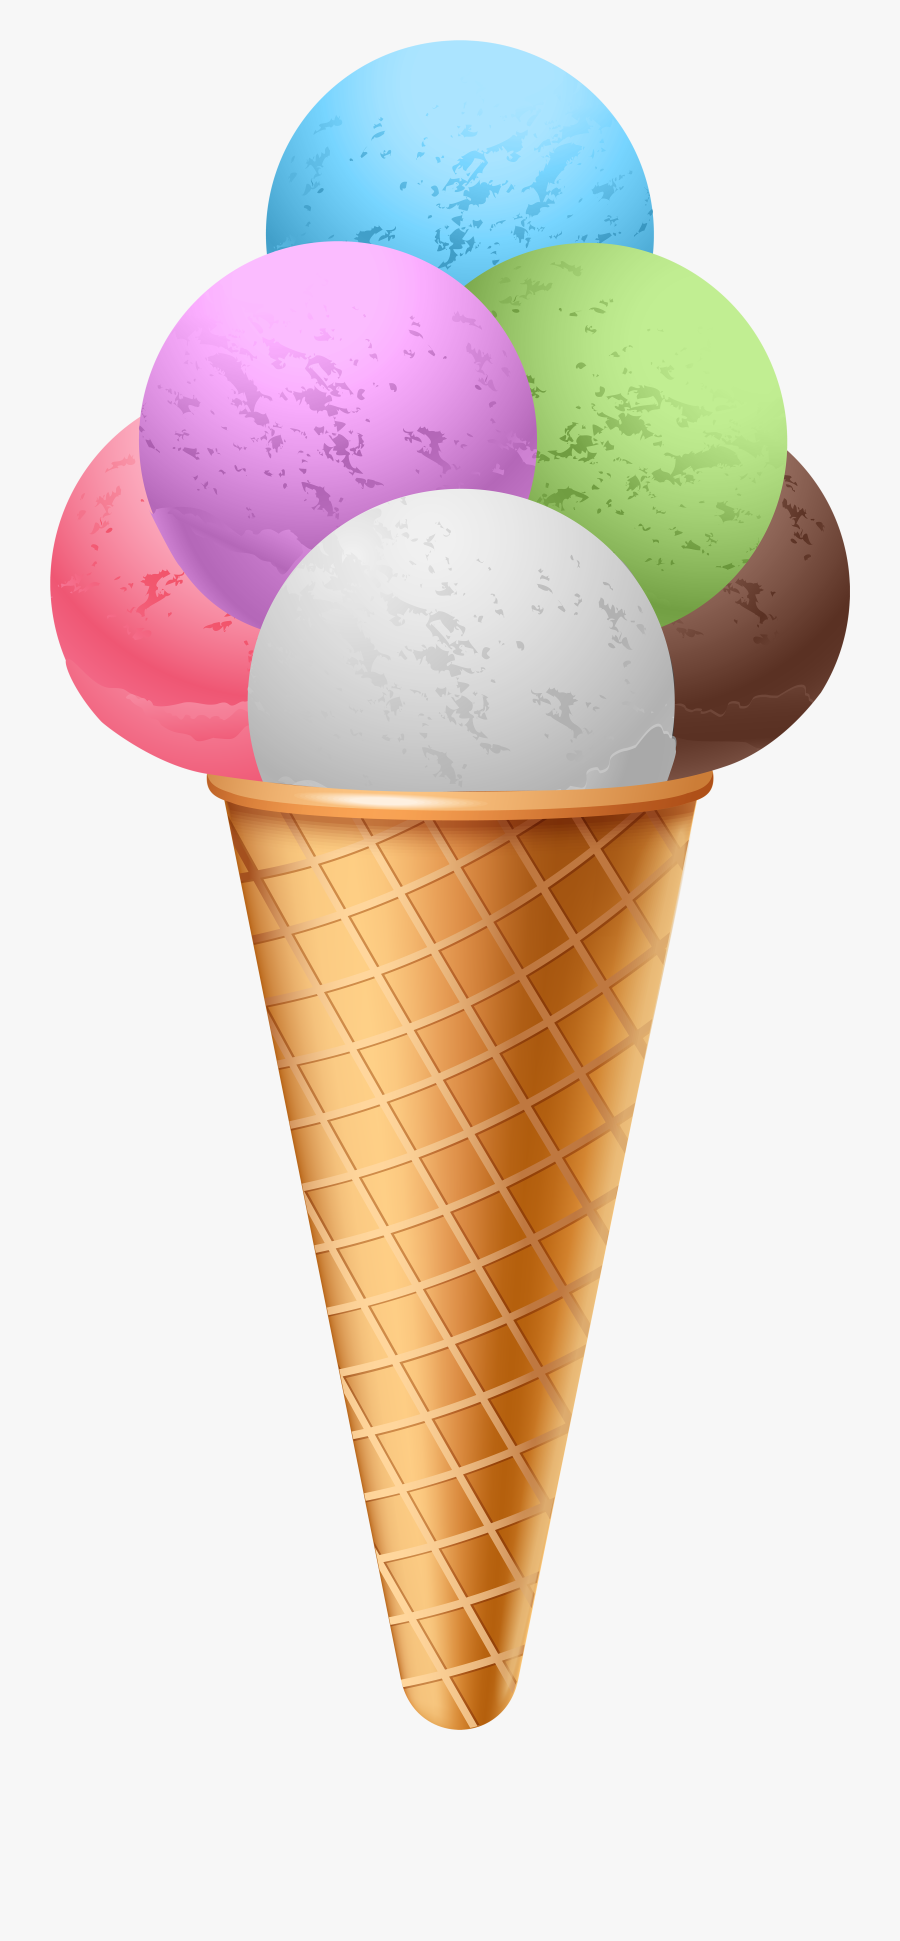 Halloween Clipart Ice Cream - Ice Cream Png Clipart, Transparent Clipart